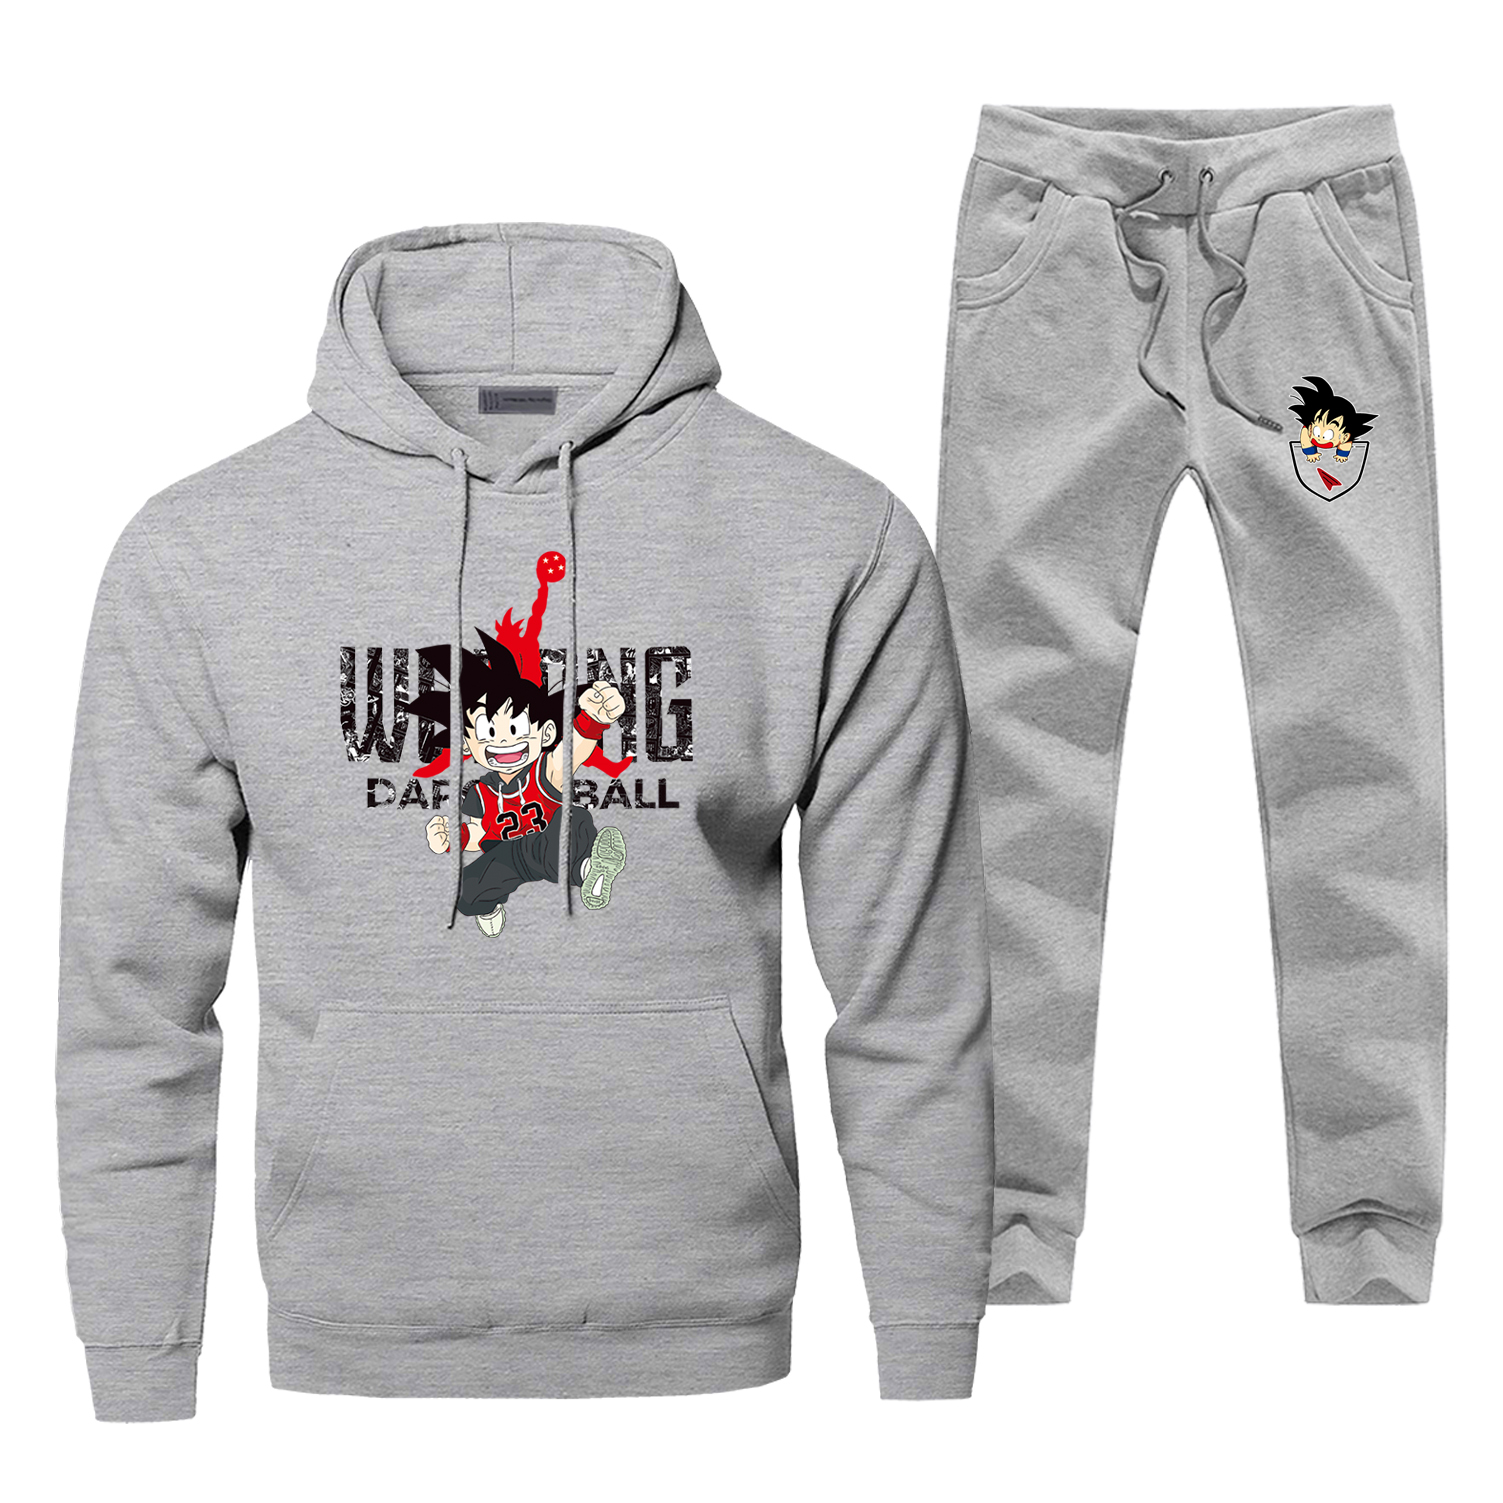 Dargon Ball Hoodie Pants Set Men Sweatshirt Male Hoodies Sweatshirts Japan Anime Mens Sets Two Piece Pant Pullover Harajuku Coat